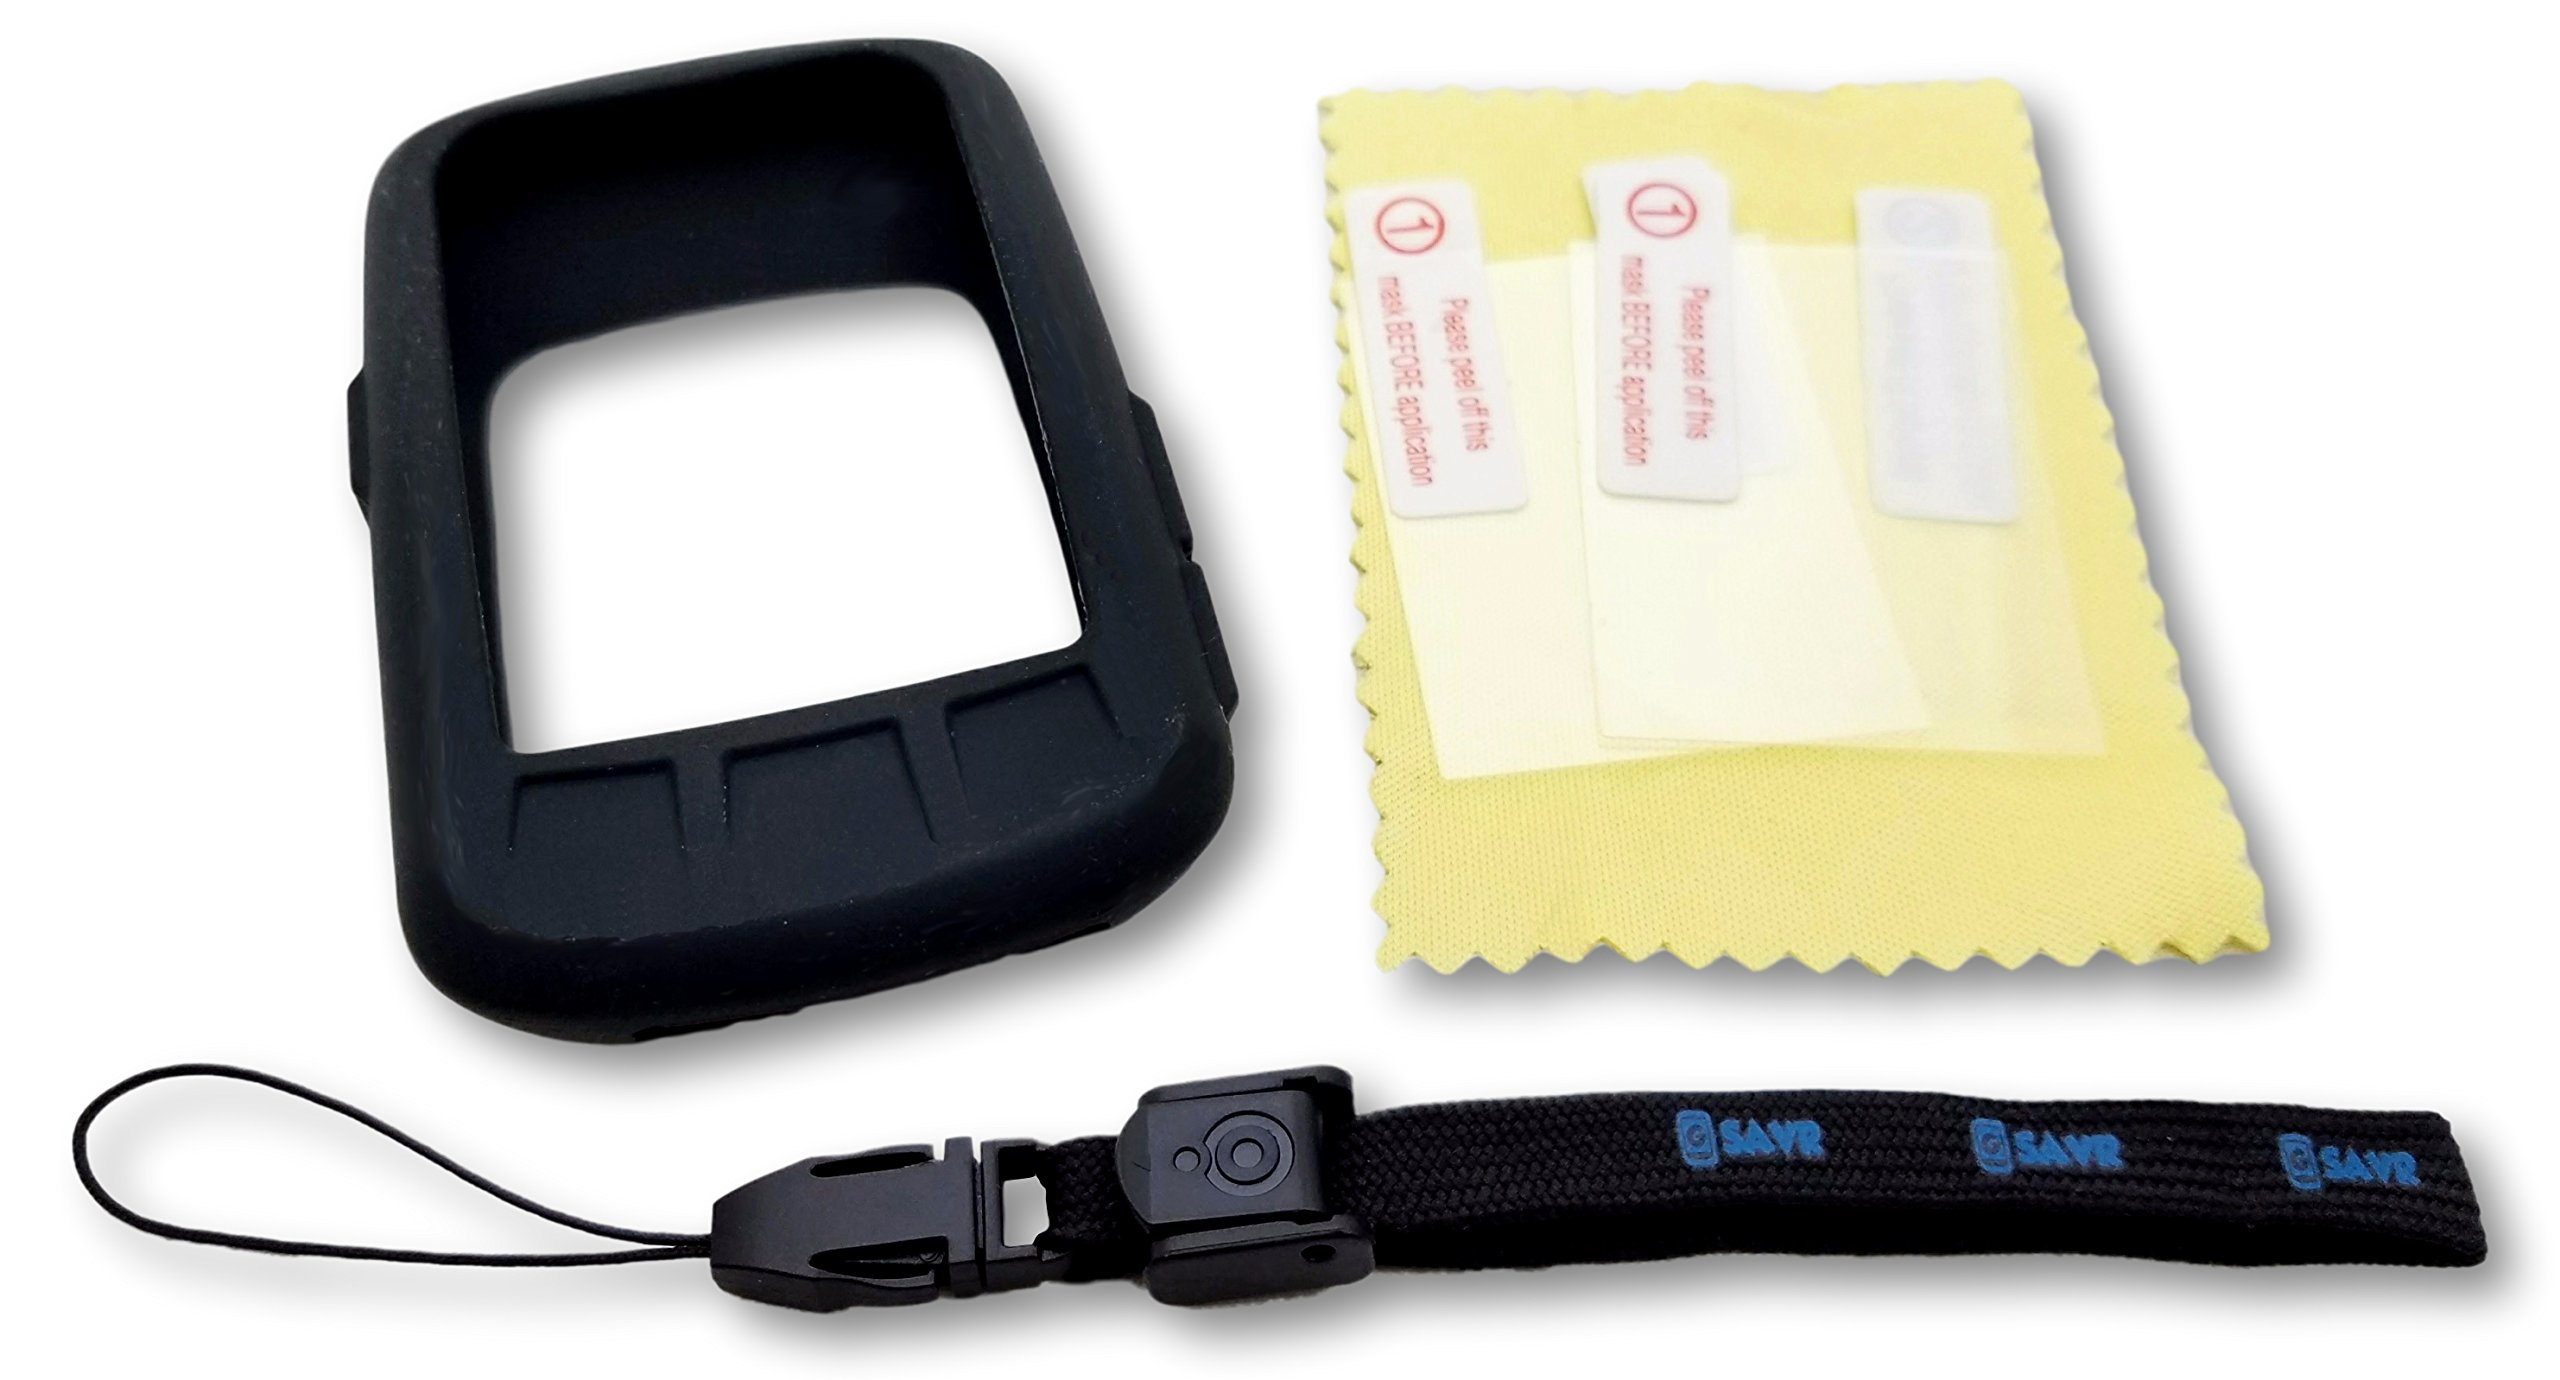 Freedom Bike Wahoo ELEMNT Bolt Ultimate Protection Bundle - Includes G-SAVR Lanyard - Tether, Molded Protective Silicone Case, and 3 Screen Protectors